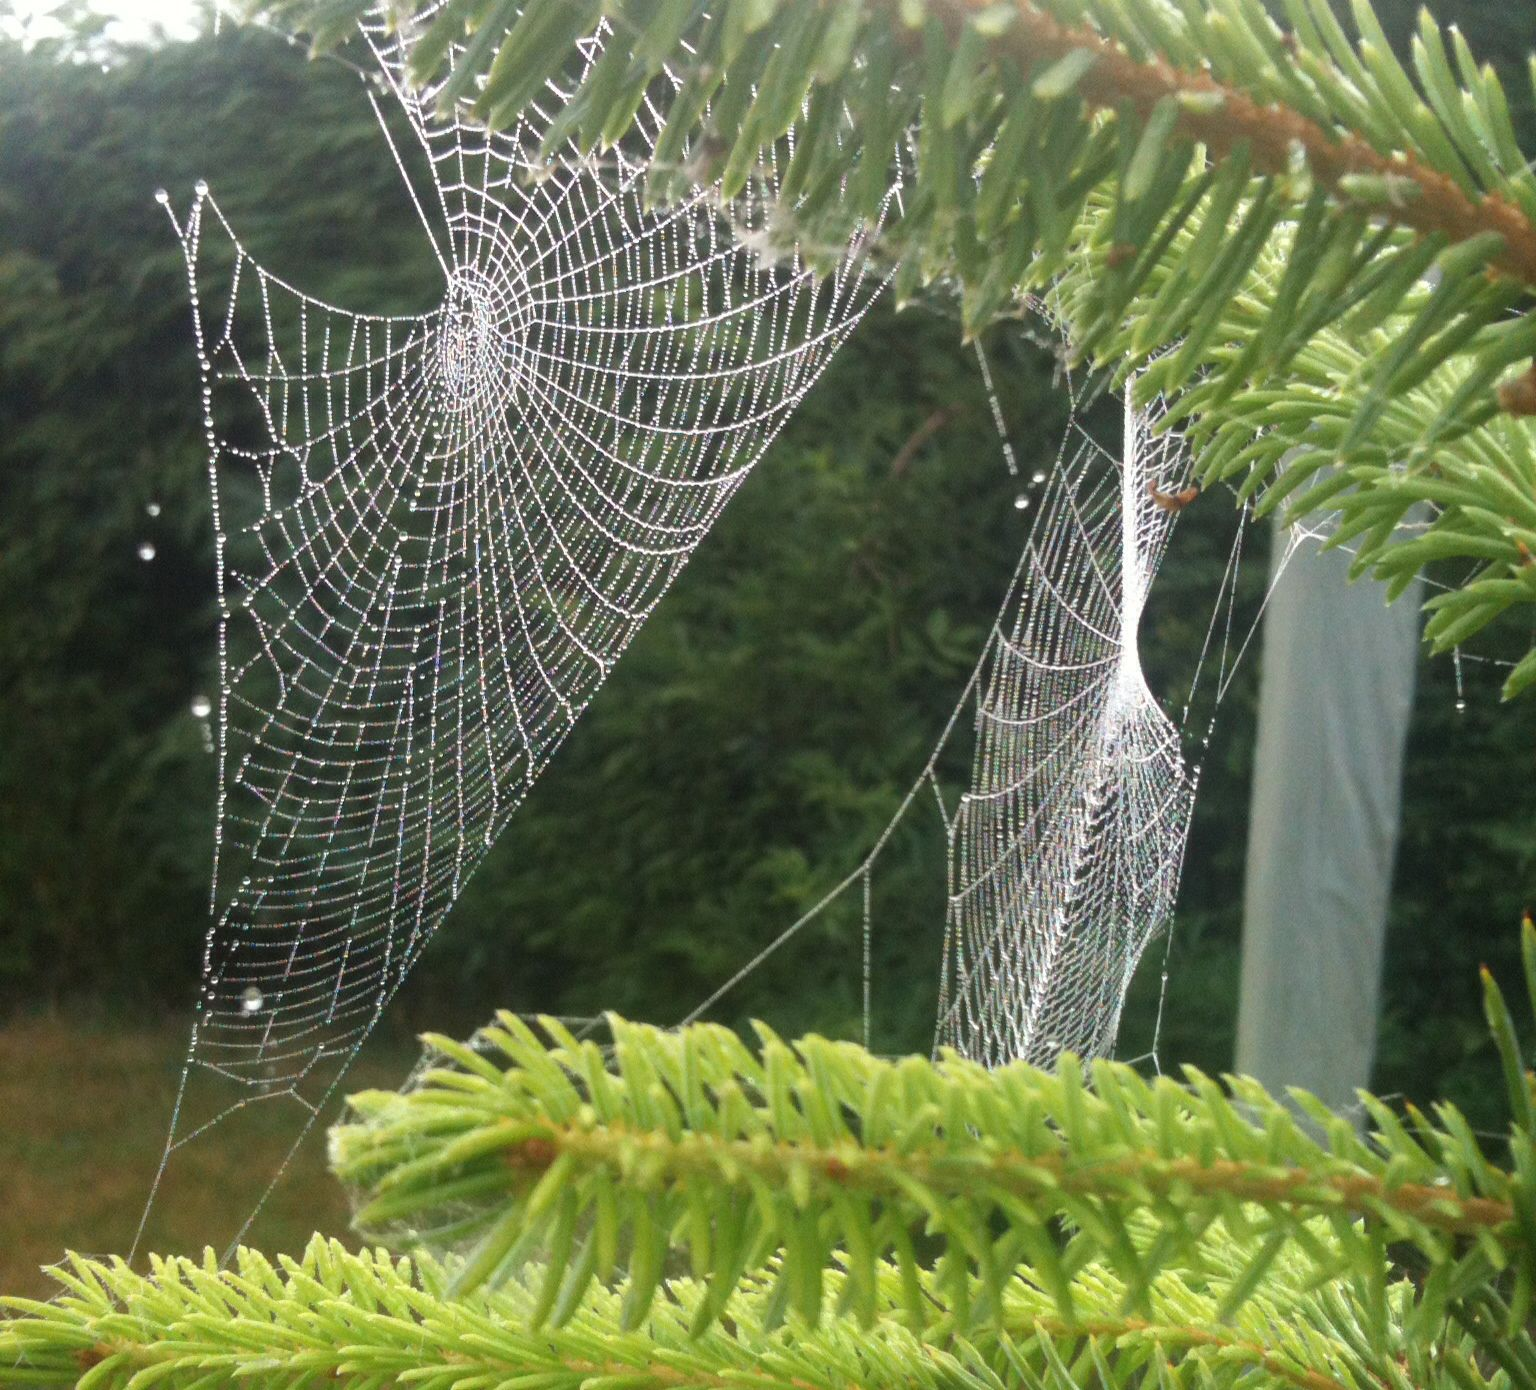 How To Prevent Cobwebs From Reoccurring